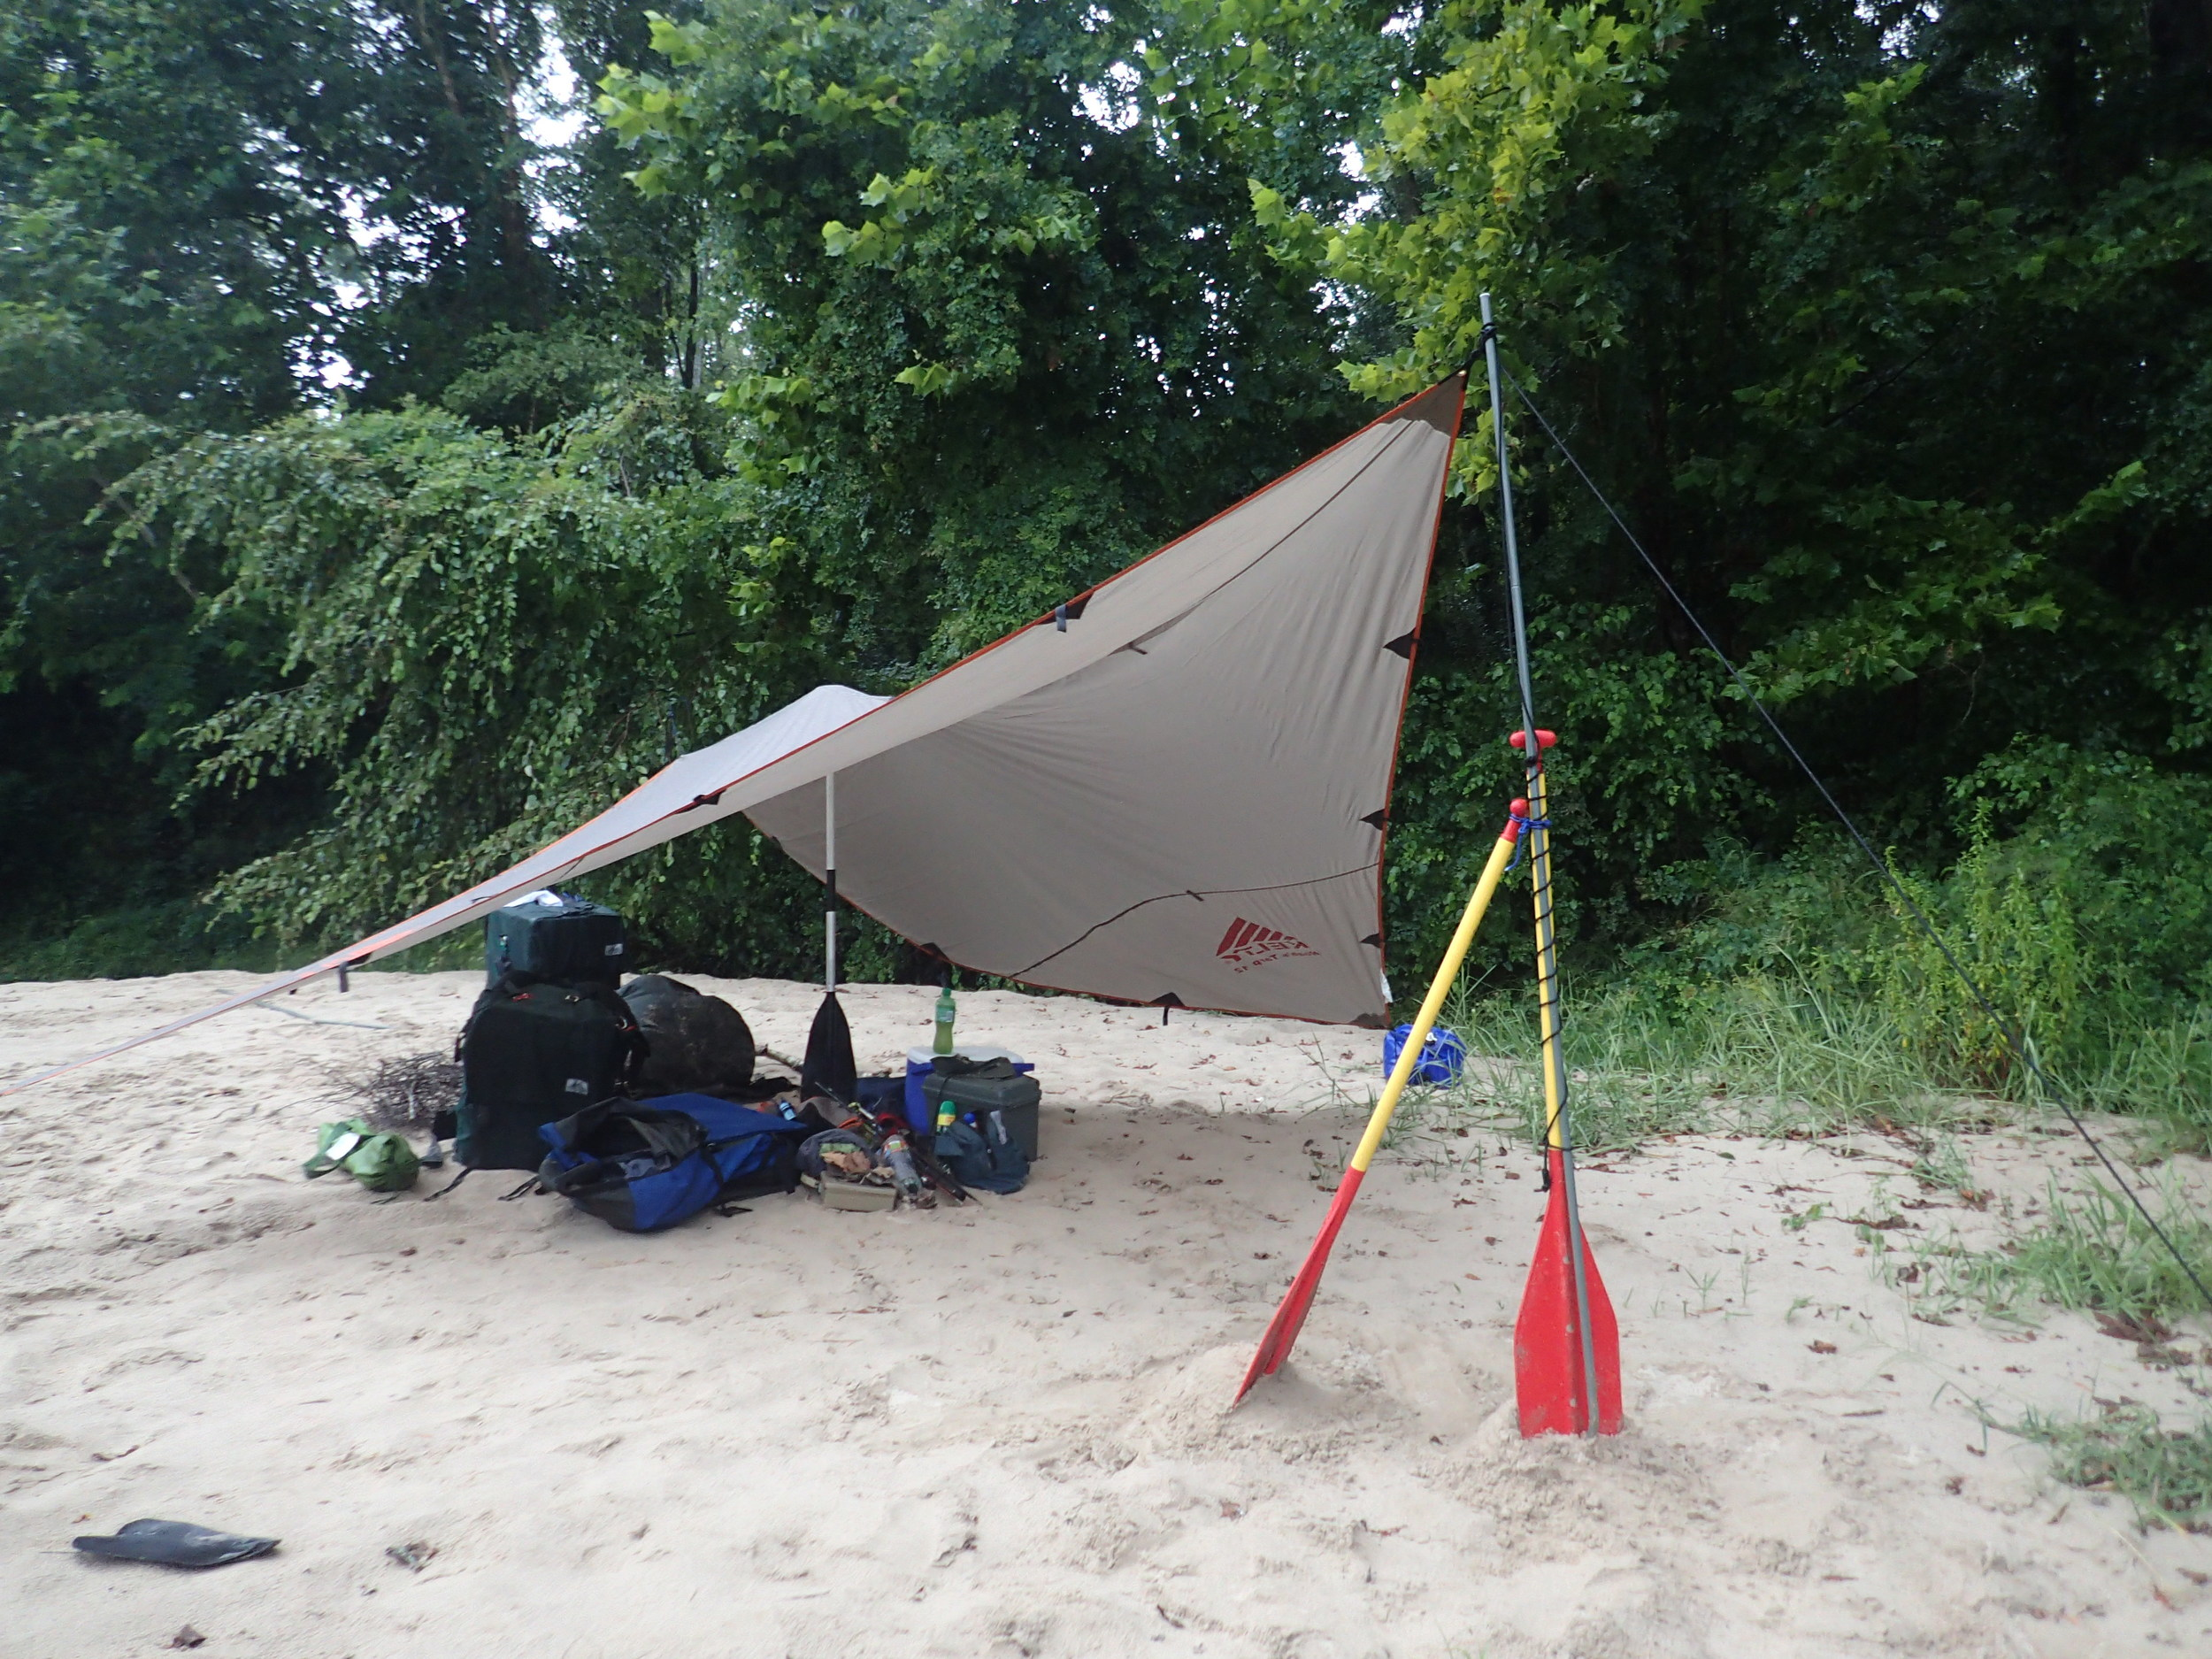 The paddles helped to keep the tarp upright.